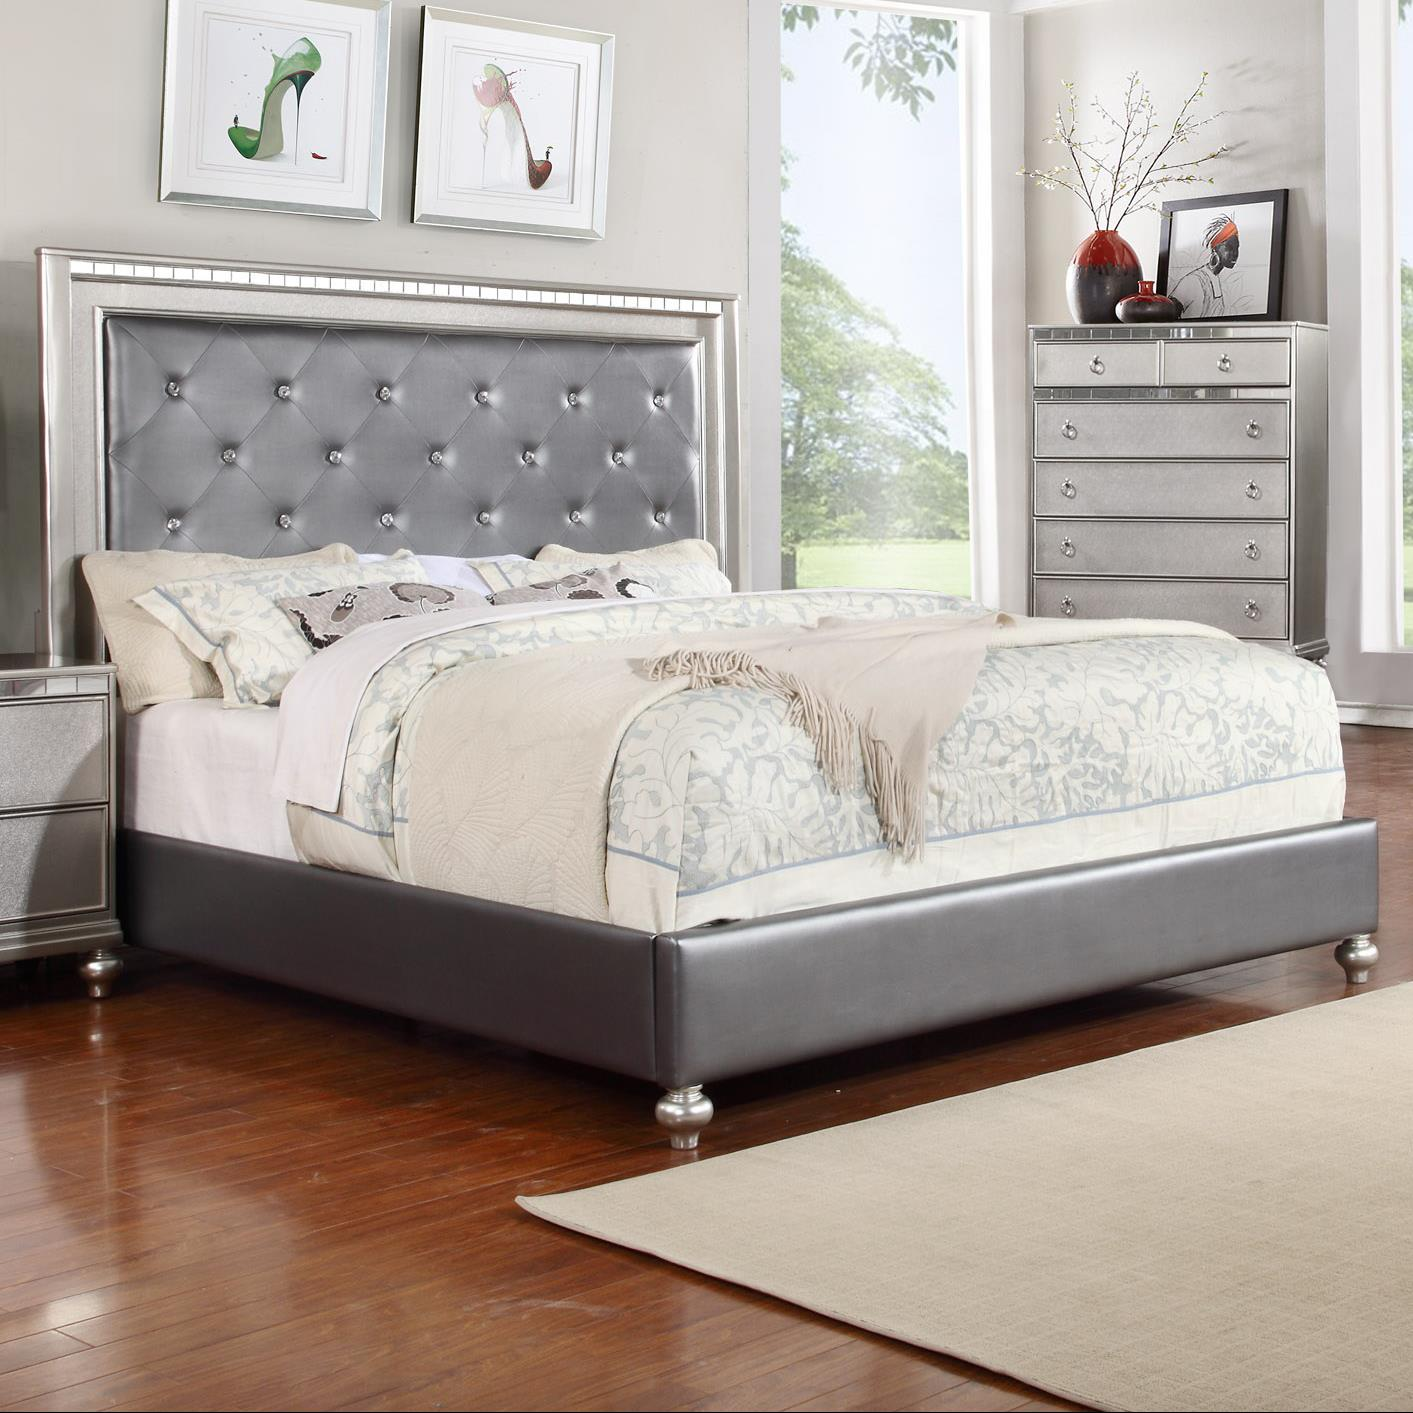 Accent Bed Glam Queen Upholstered Panel Bed With Rhinestone Accent